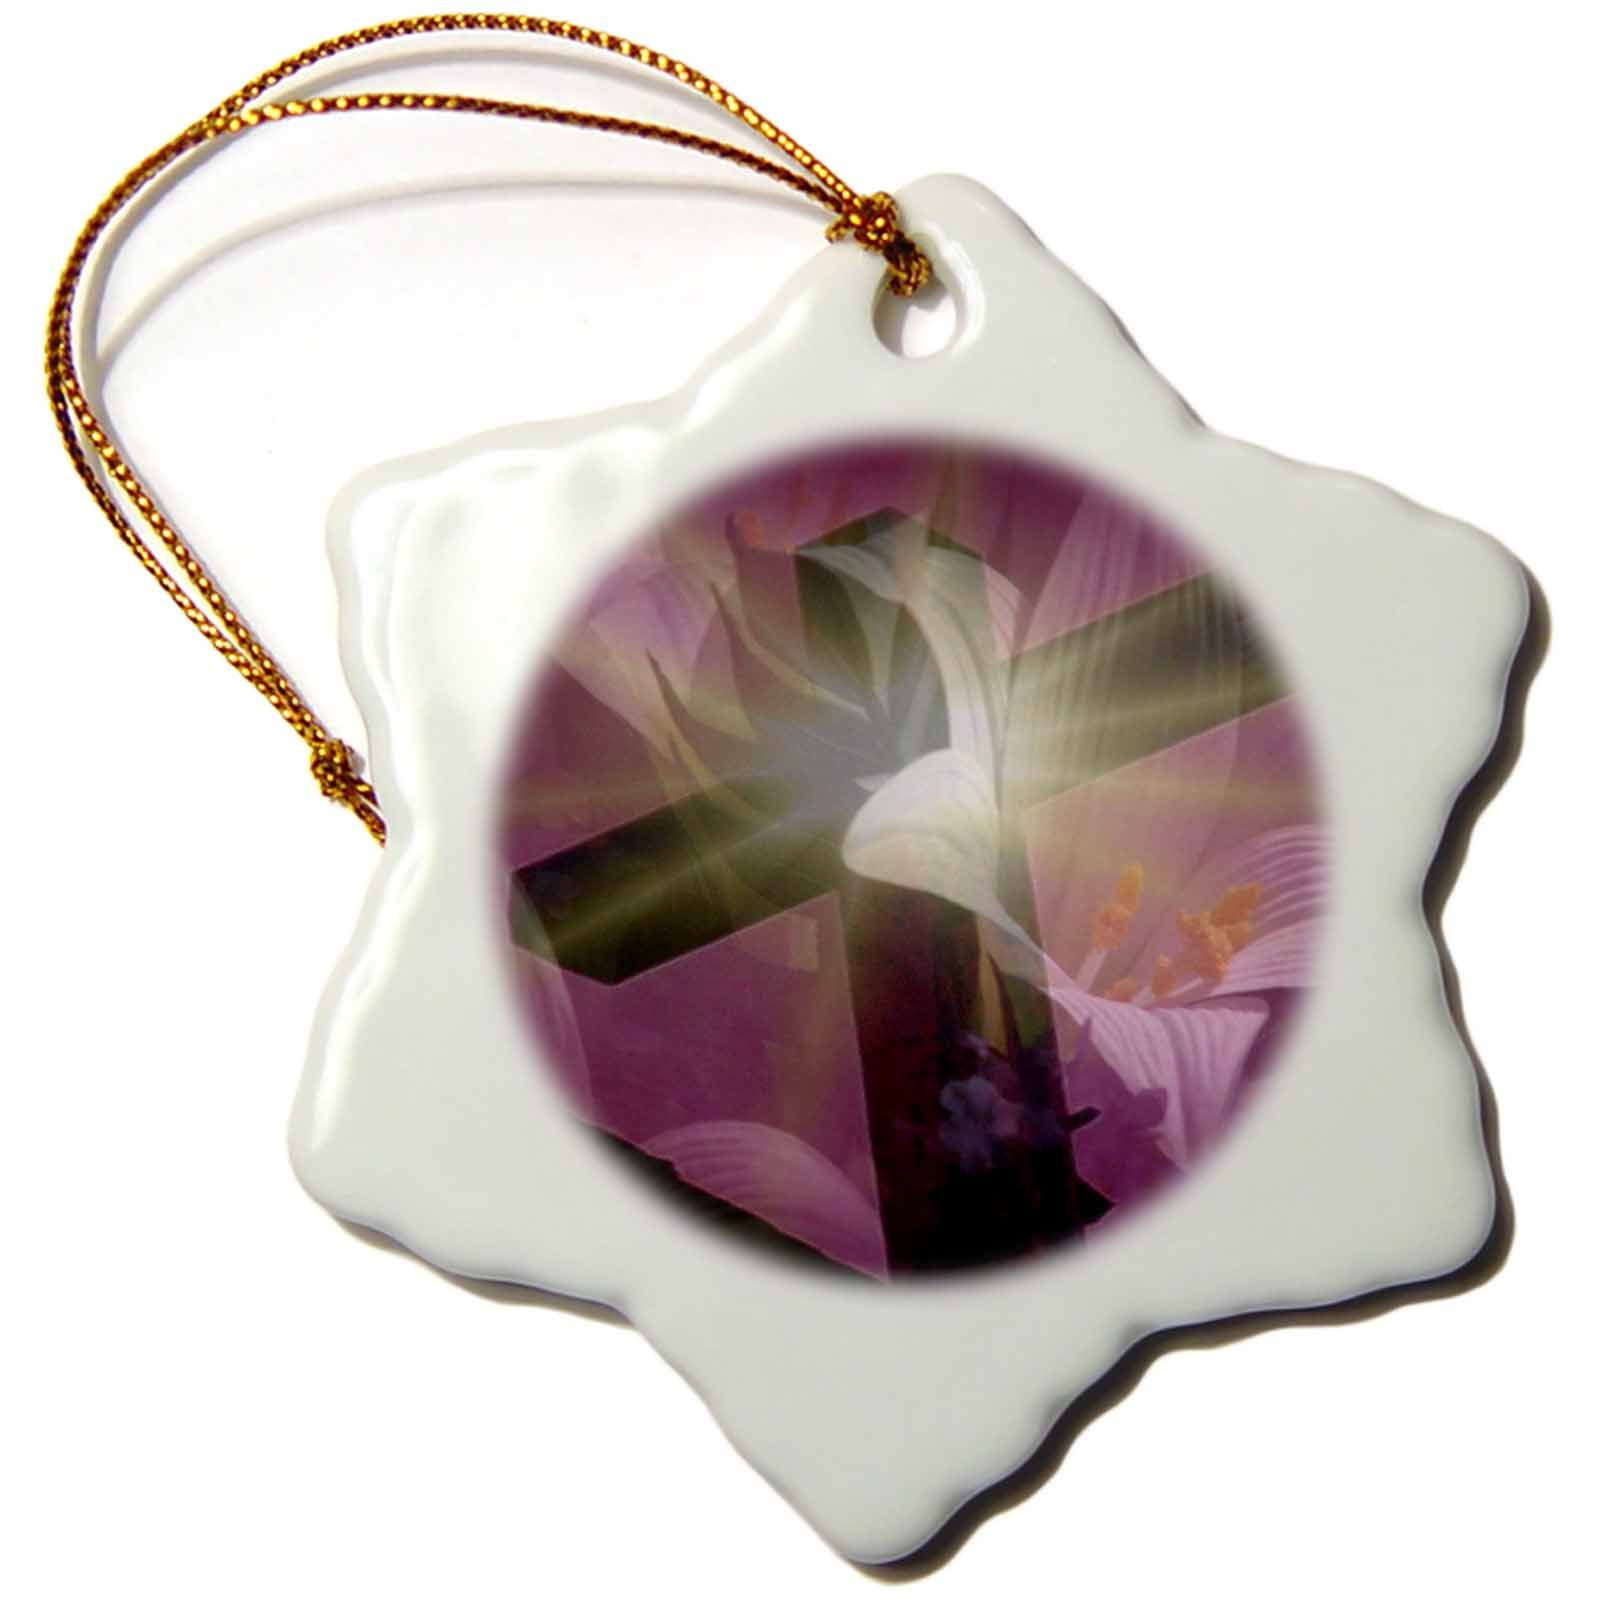 3dRose orn_42952_1 Christian Cross and Lily Snowflake Porcelain Ornament, 3-Inch